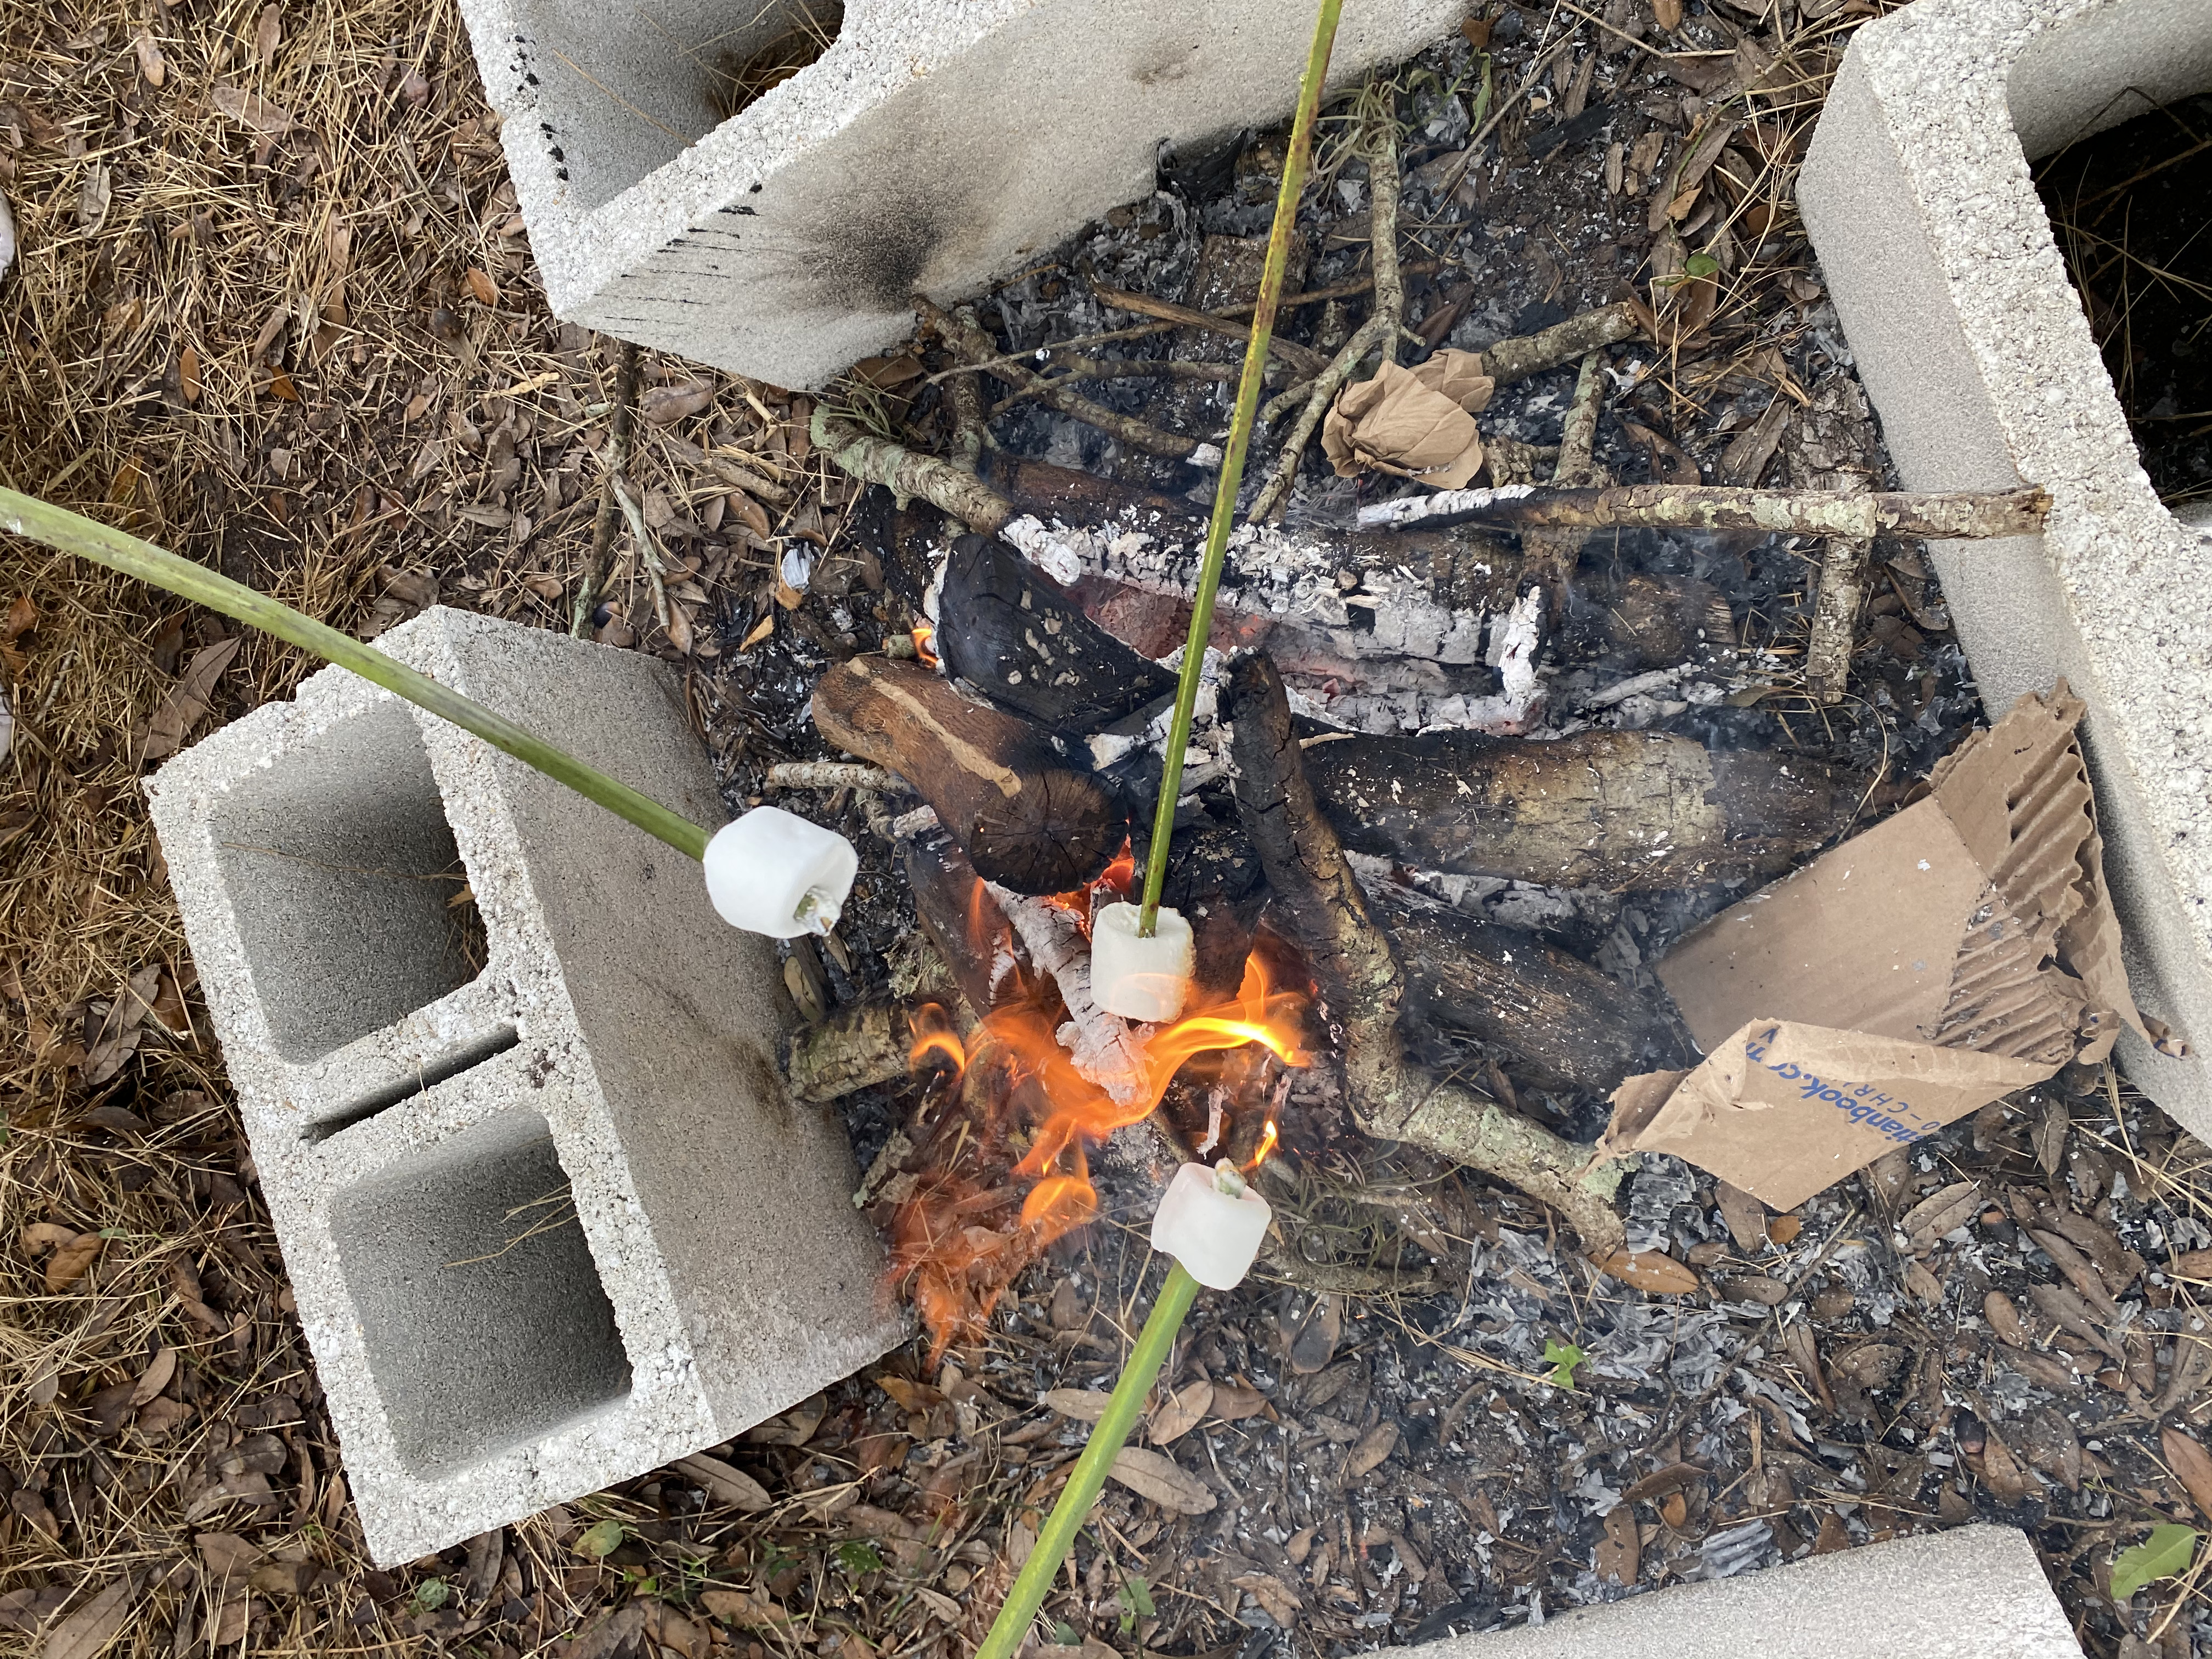 Campfire with marshmallows on palm fronds.